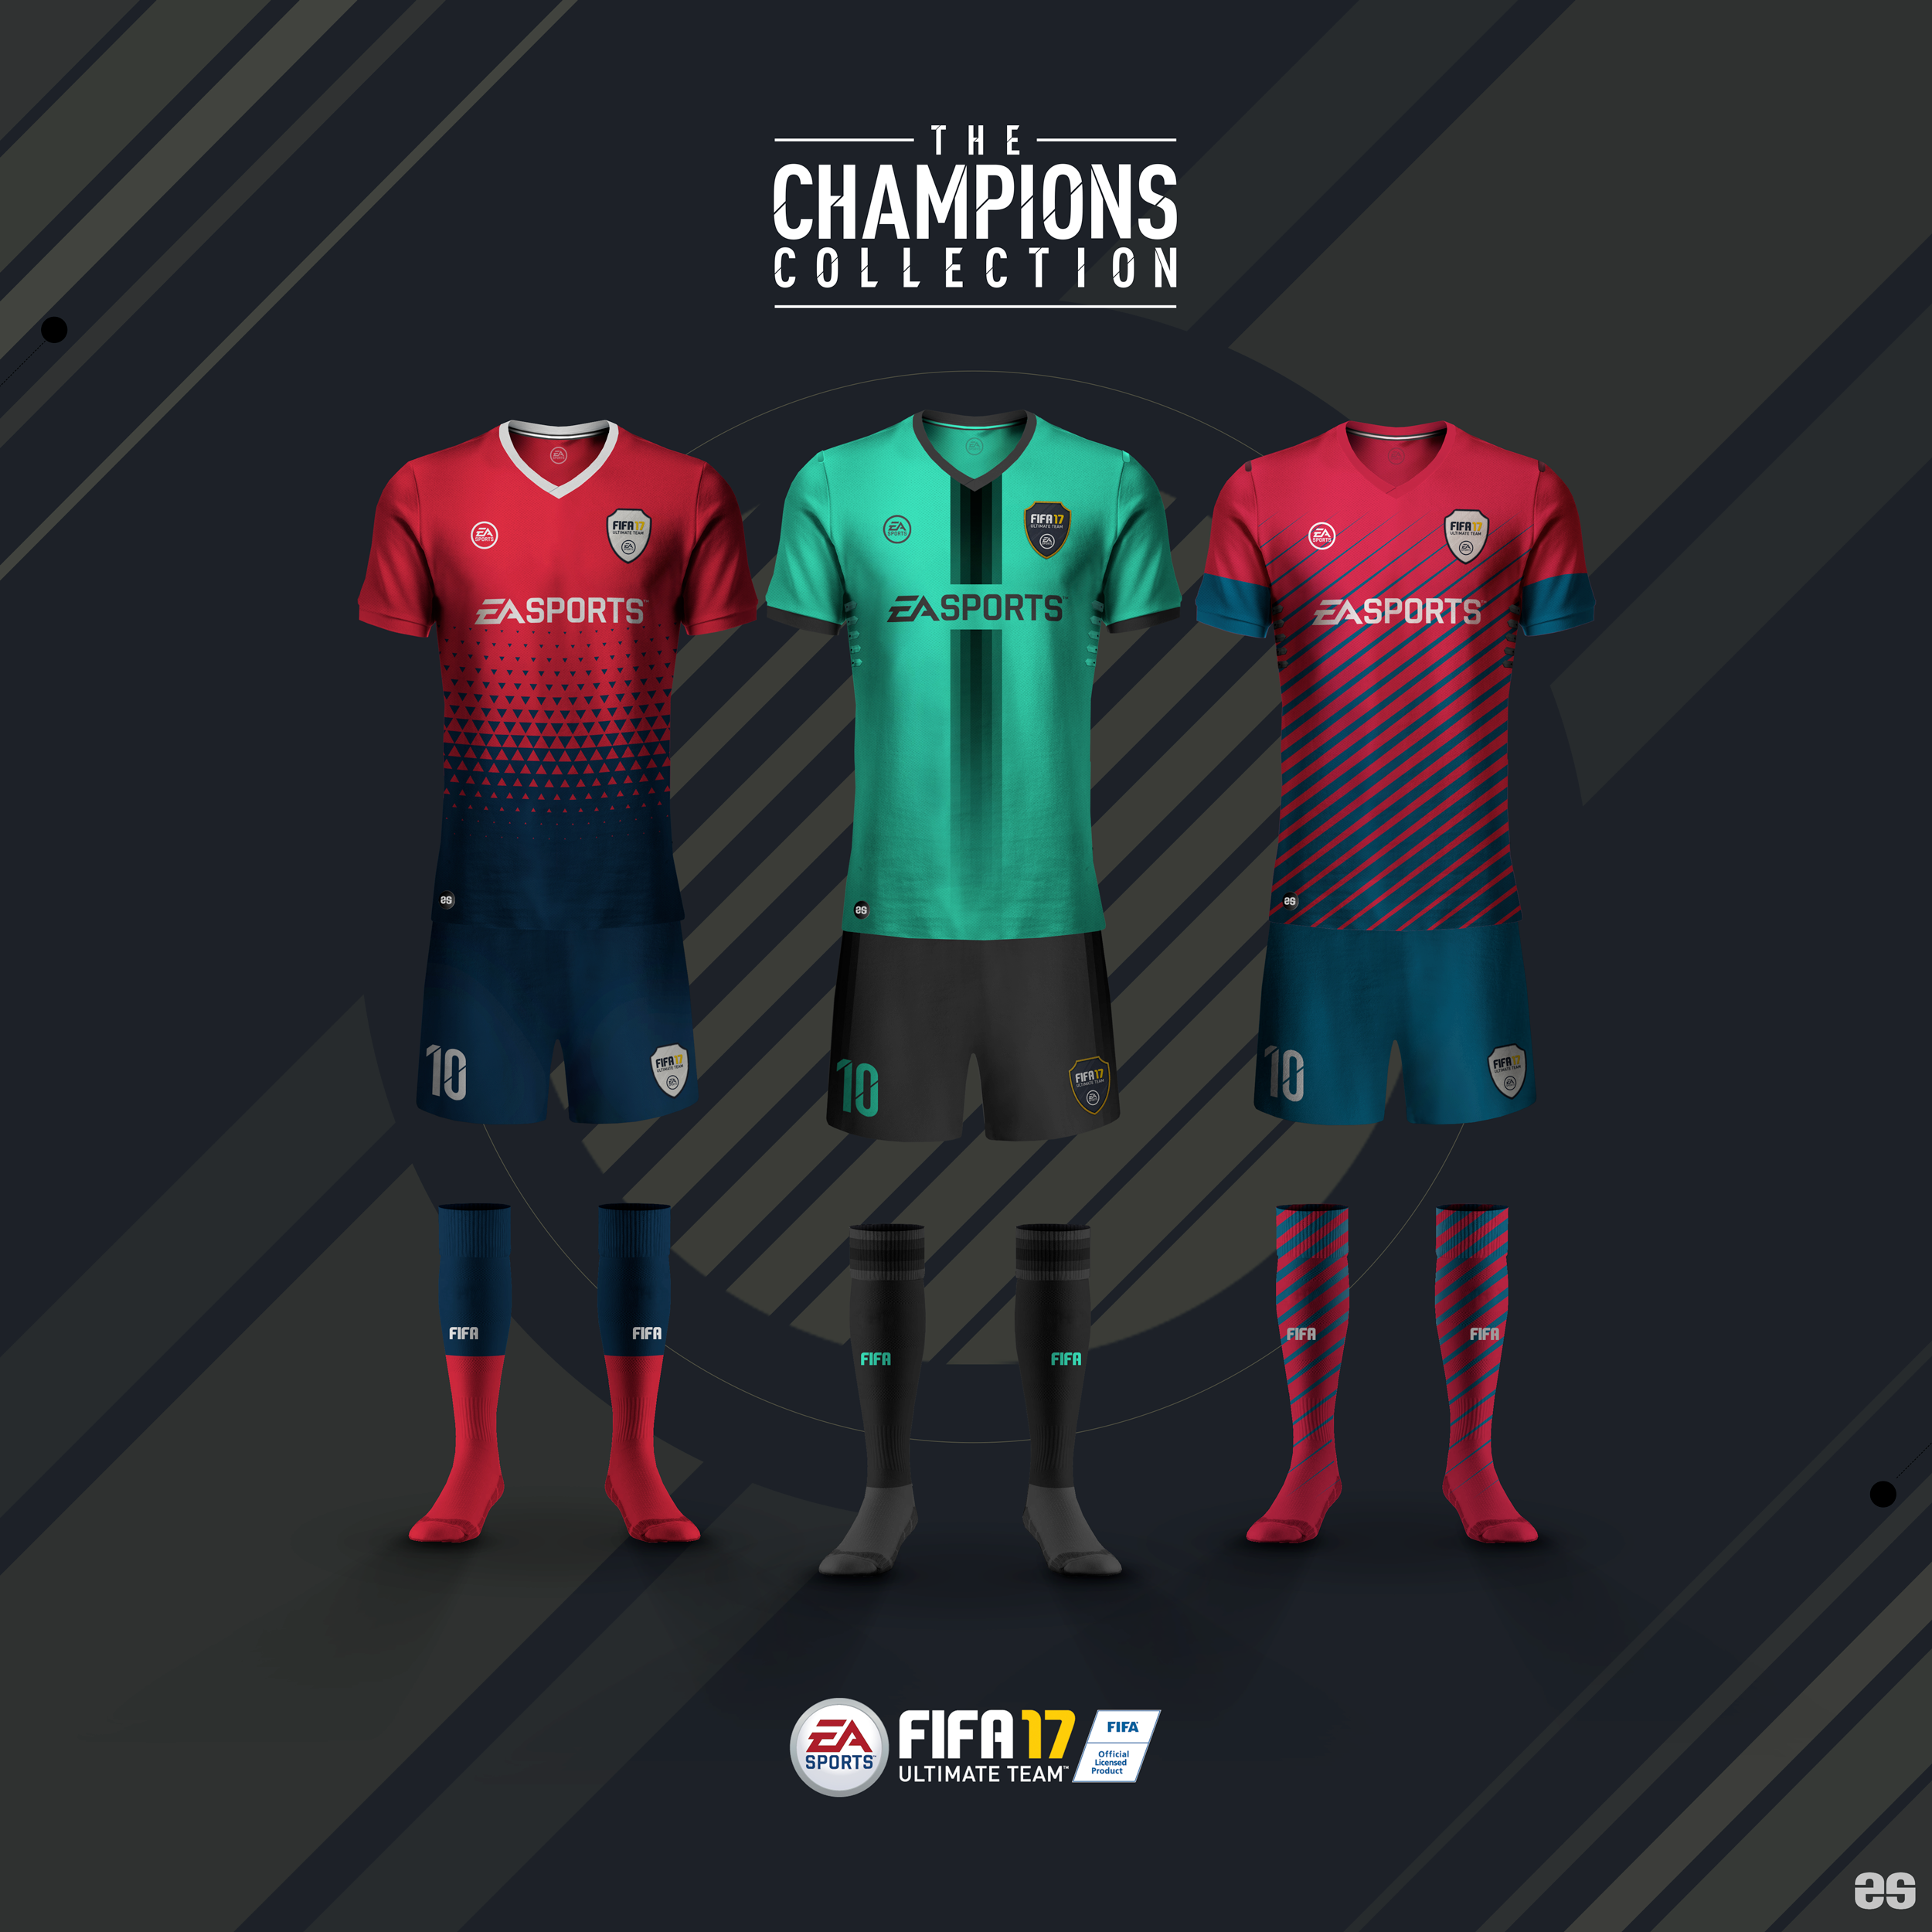 THE-CHAMPIONS-COLLECTION_NOVEMBER